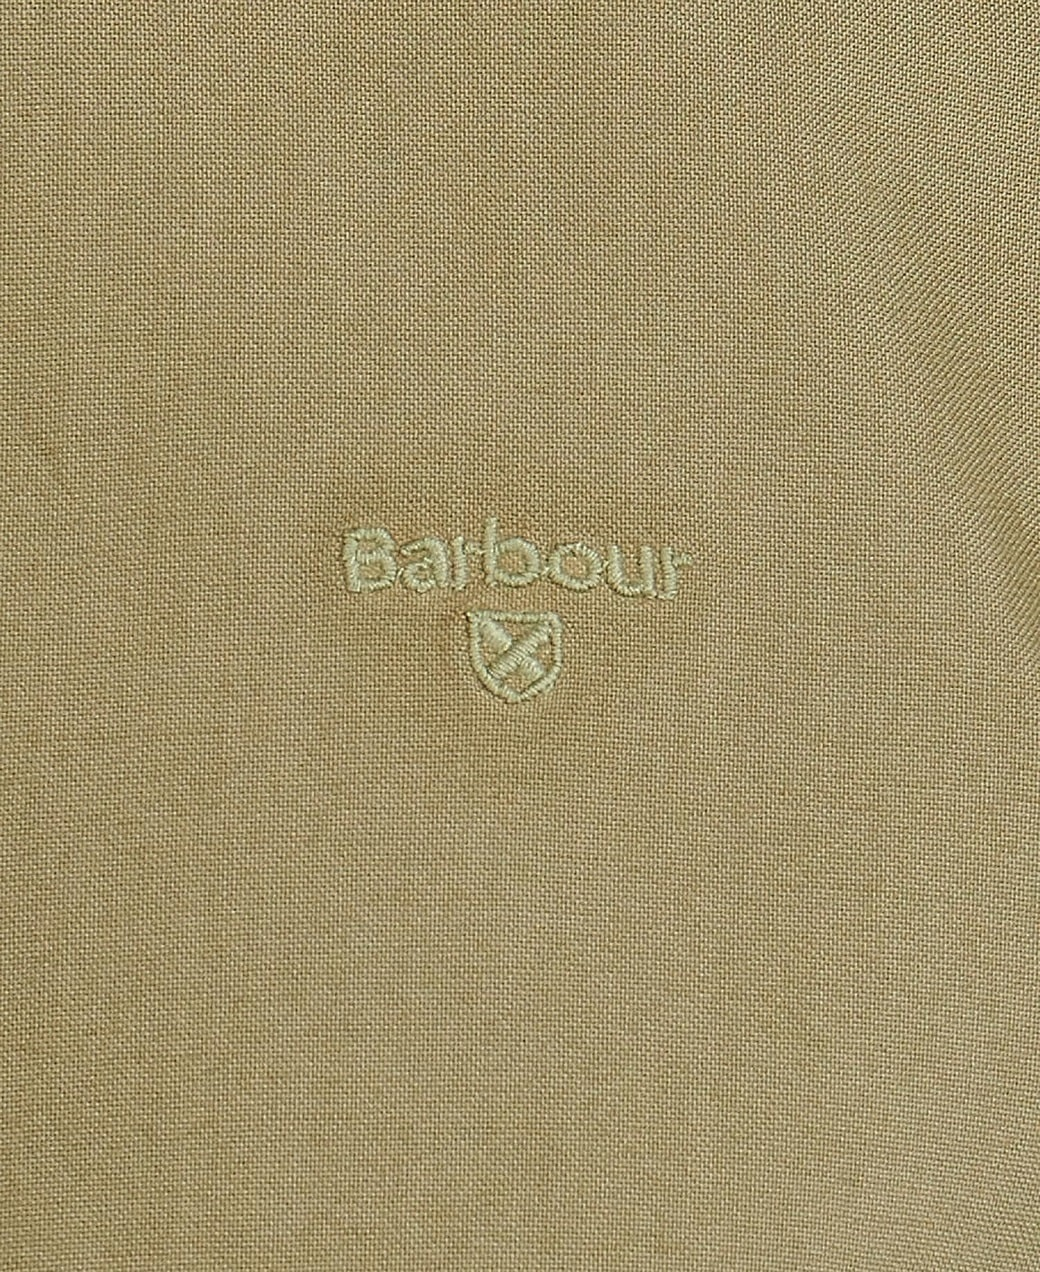 Barbour Oxford 13 Tailored Shirt Olive-6